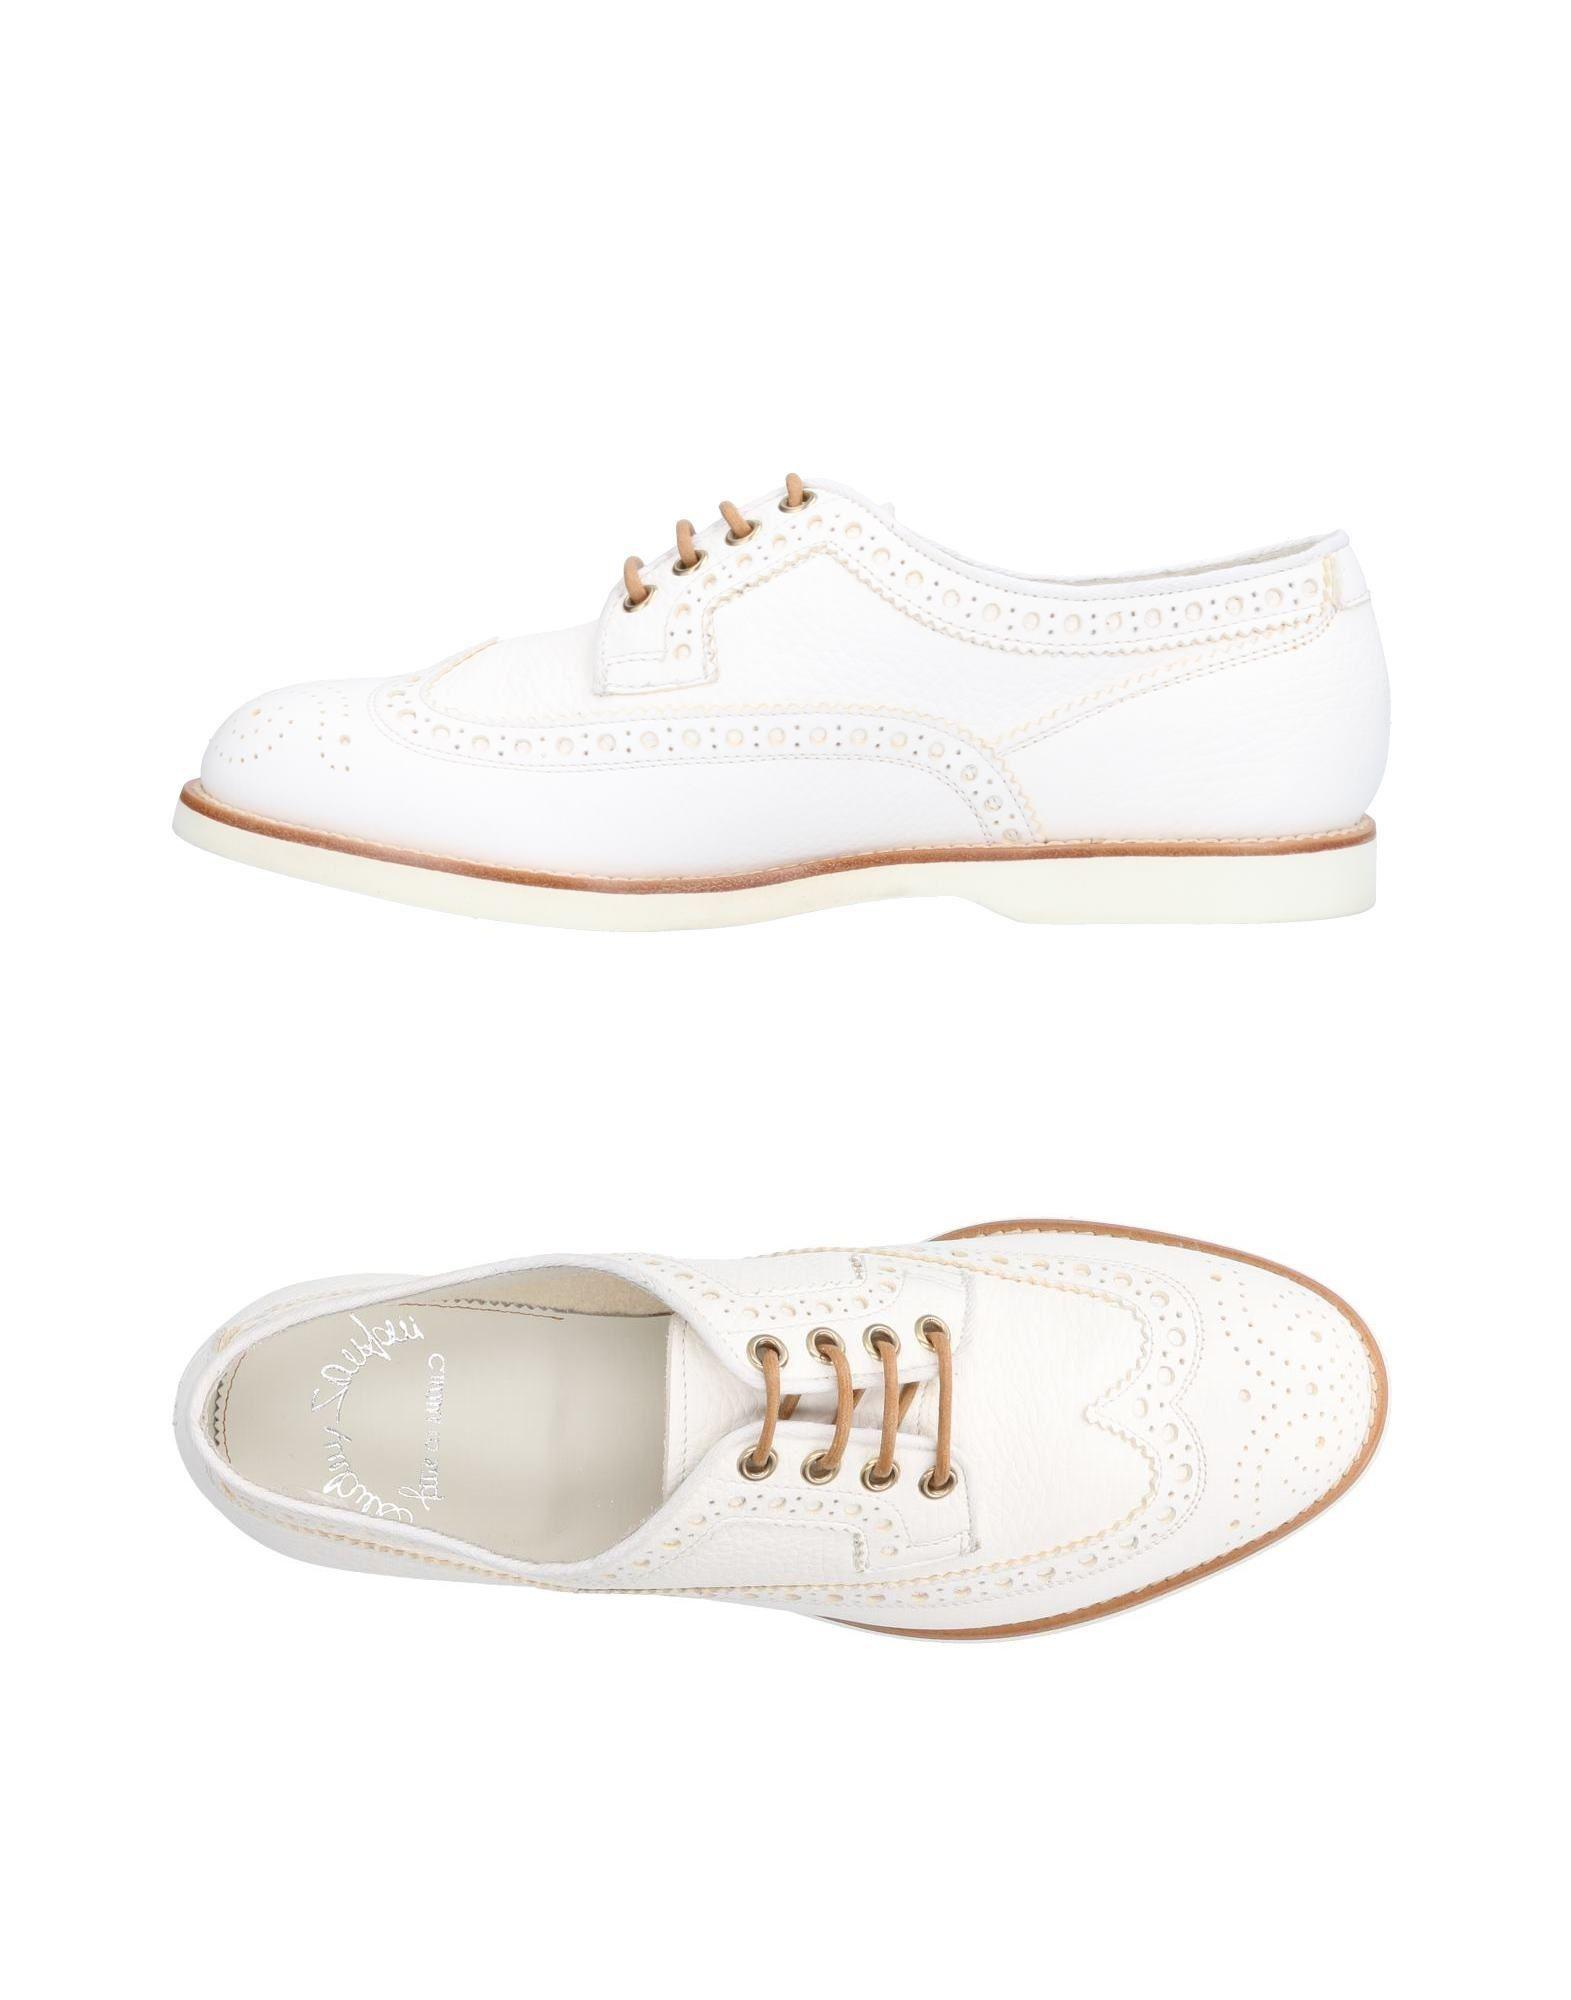 949683bc582582 Santoni Lace-up Shoe in White for Men - Lyst